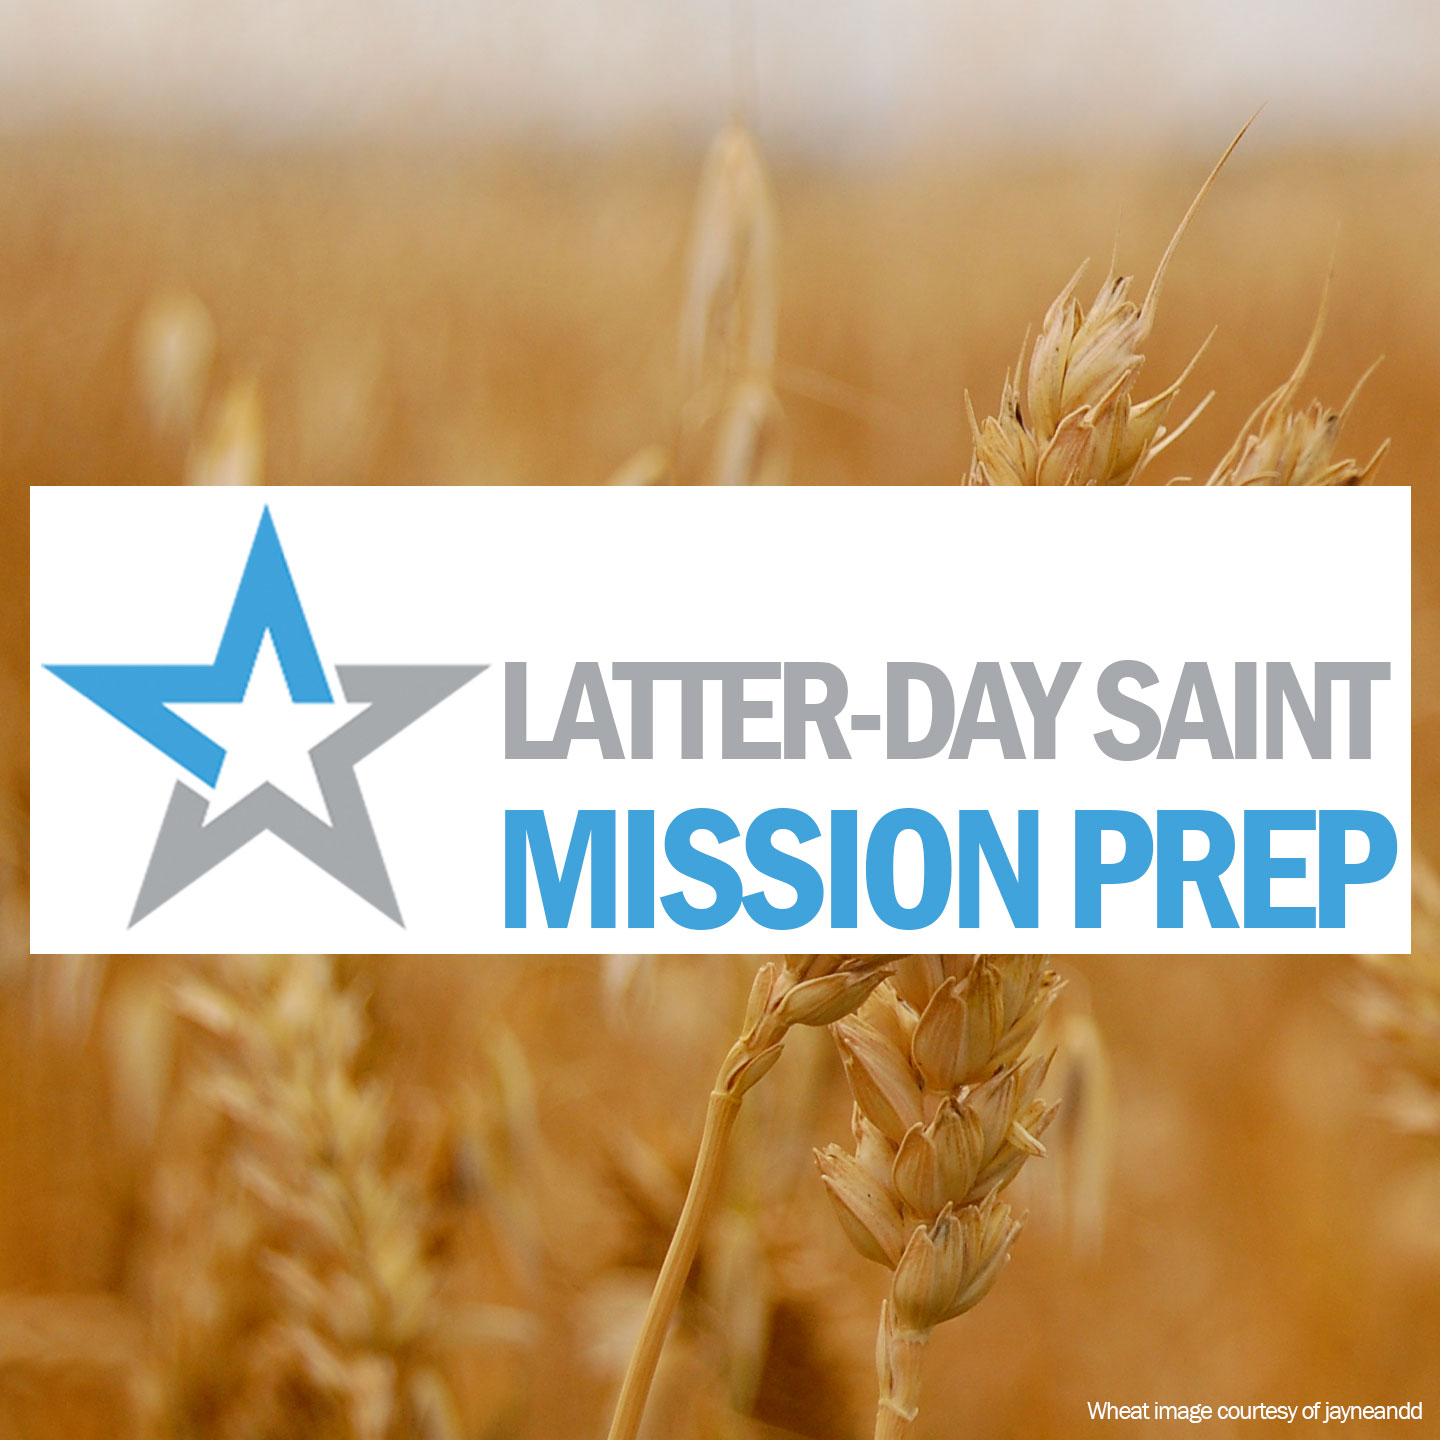 Latter-day Saint Mission Prep